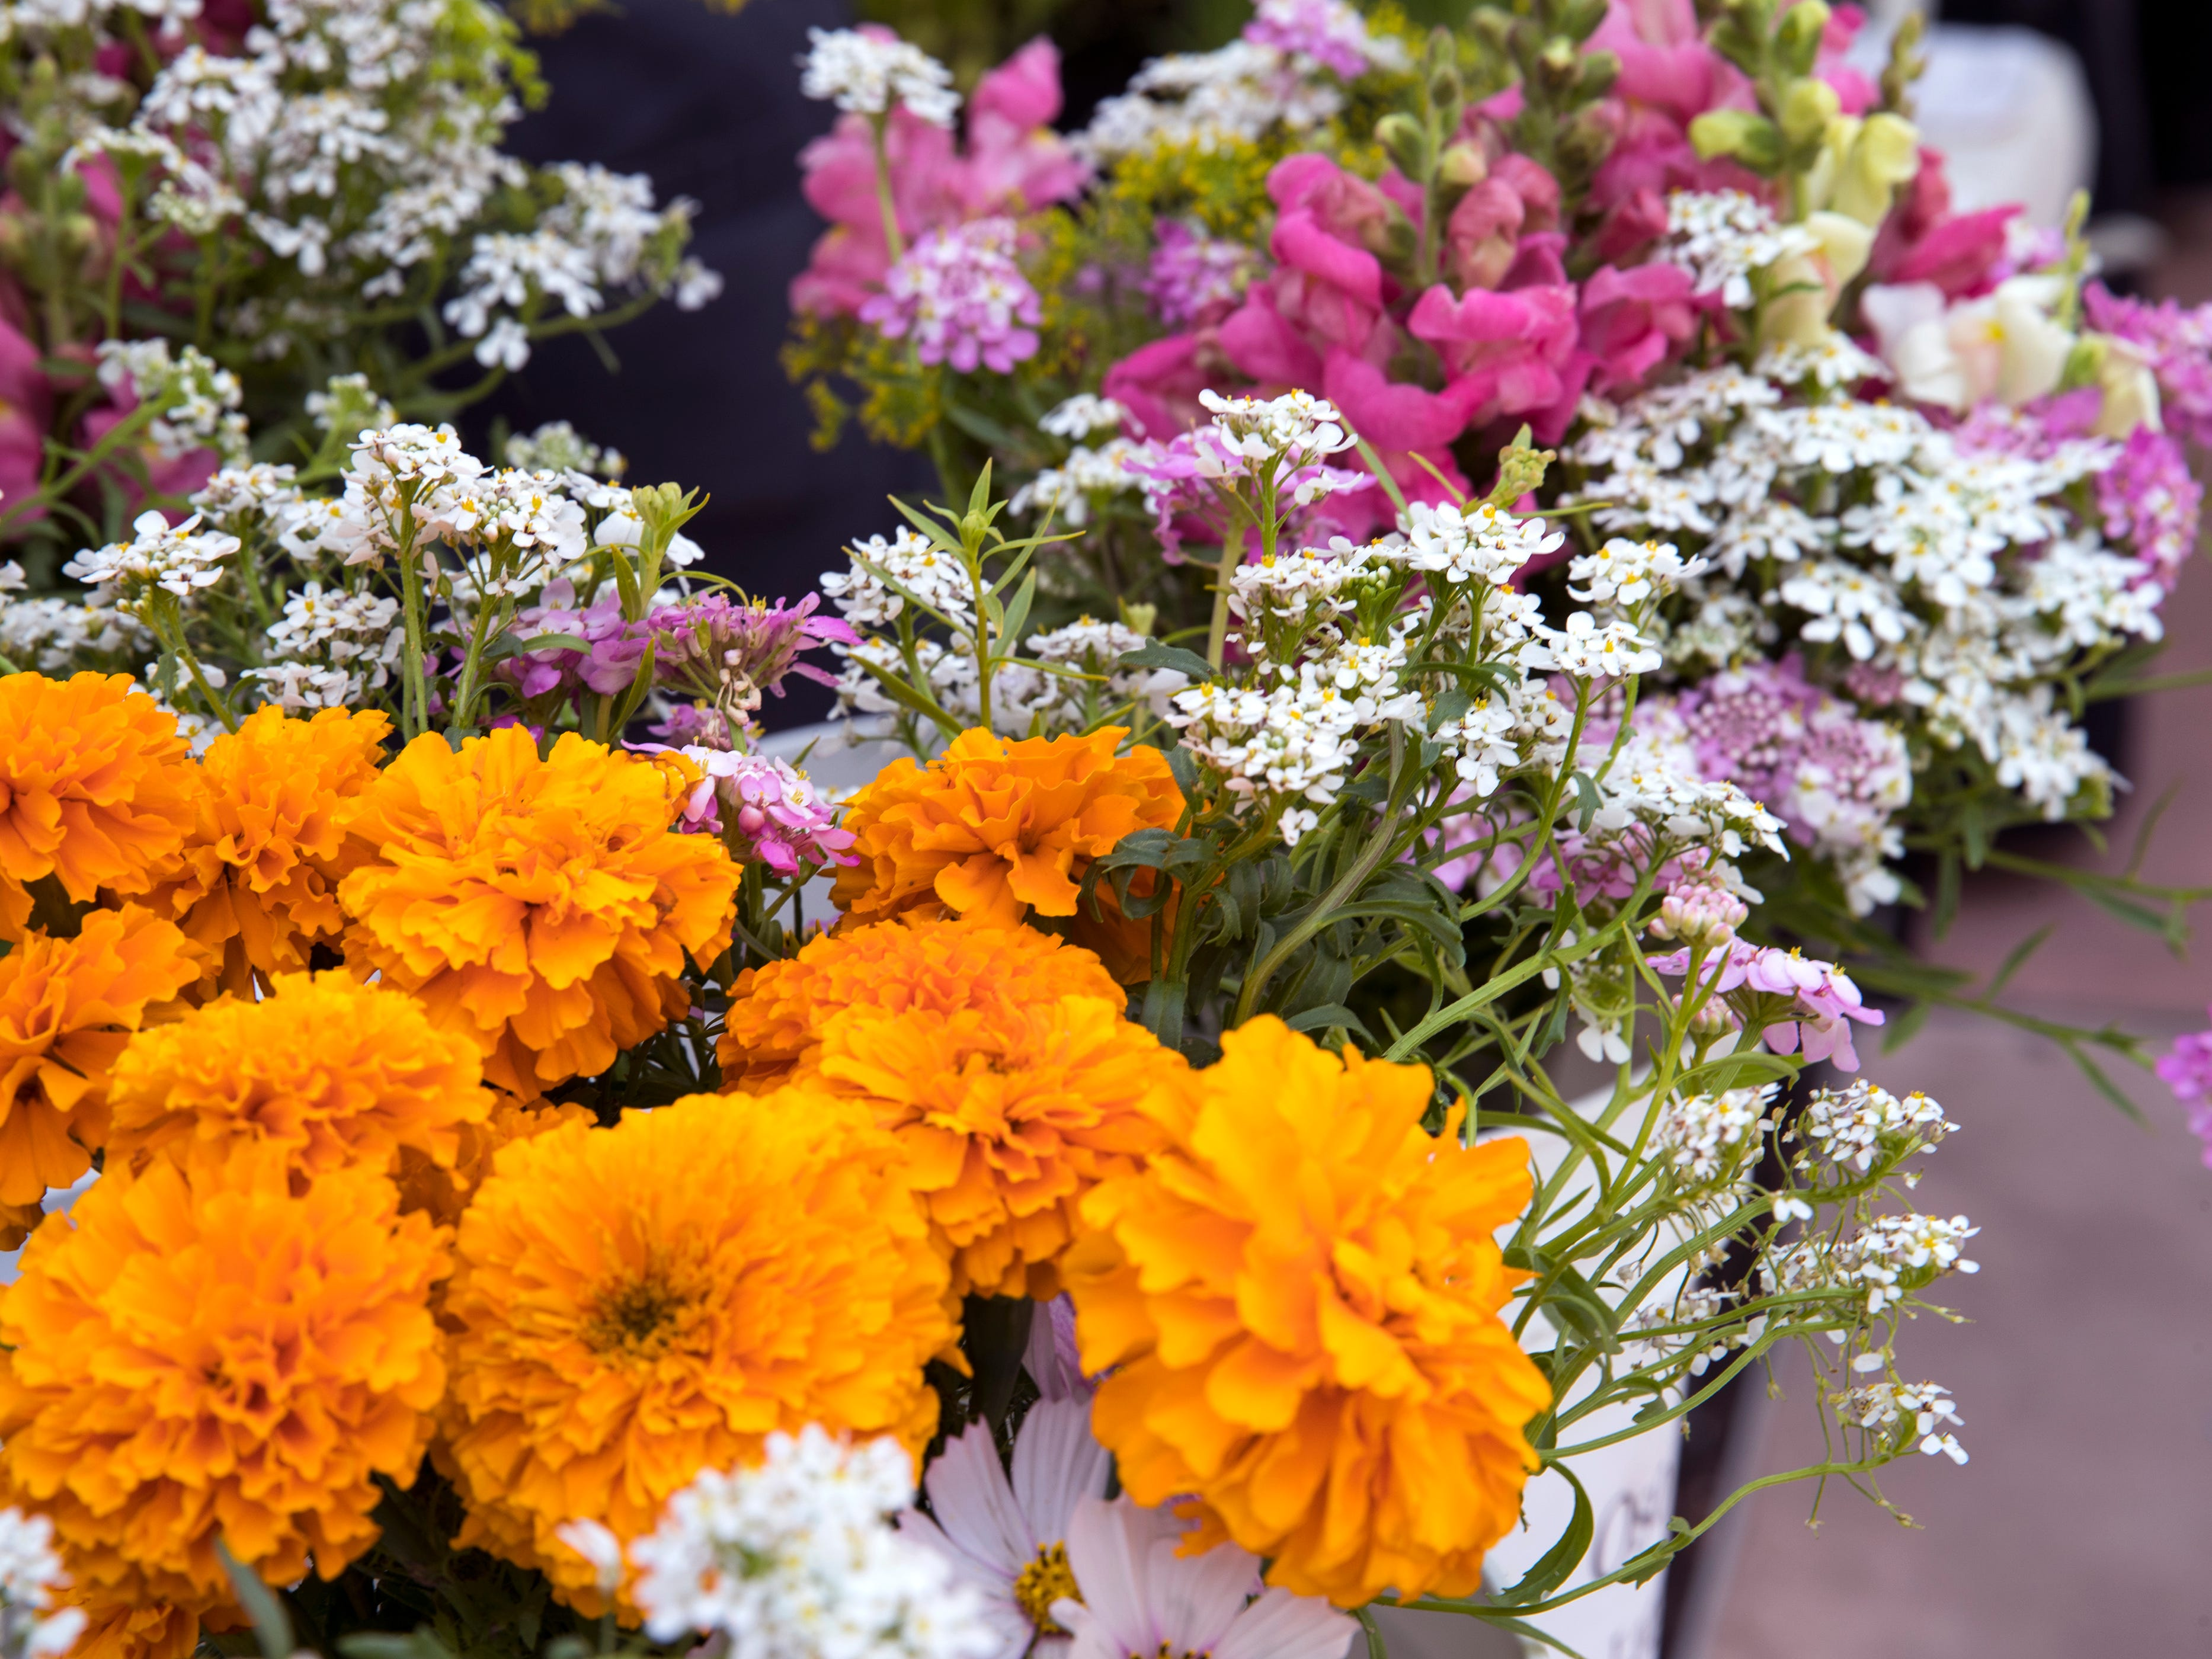 Fresh cut flowers were just one locally grown item available at the Corpus Christi Downtown Farmers Market on Wednesday, April 24, 2019. The farmers market offers a variety of seasonal produce, grass fed beef, pastured raised poultry, prepared goods such as roasted coffee, sweets and preserves and baked goods. It is open weekly on Wednesday from 5 to 8 pm at 100 N. Shoreline Blvd.